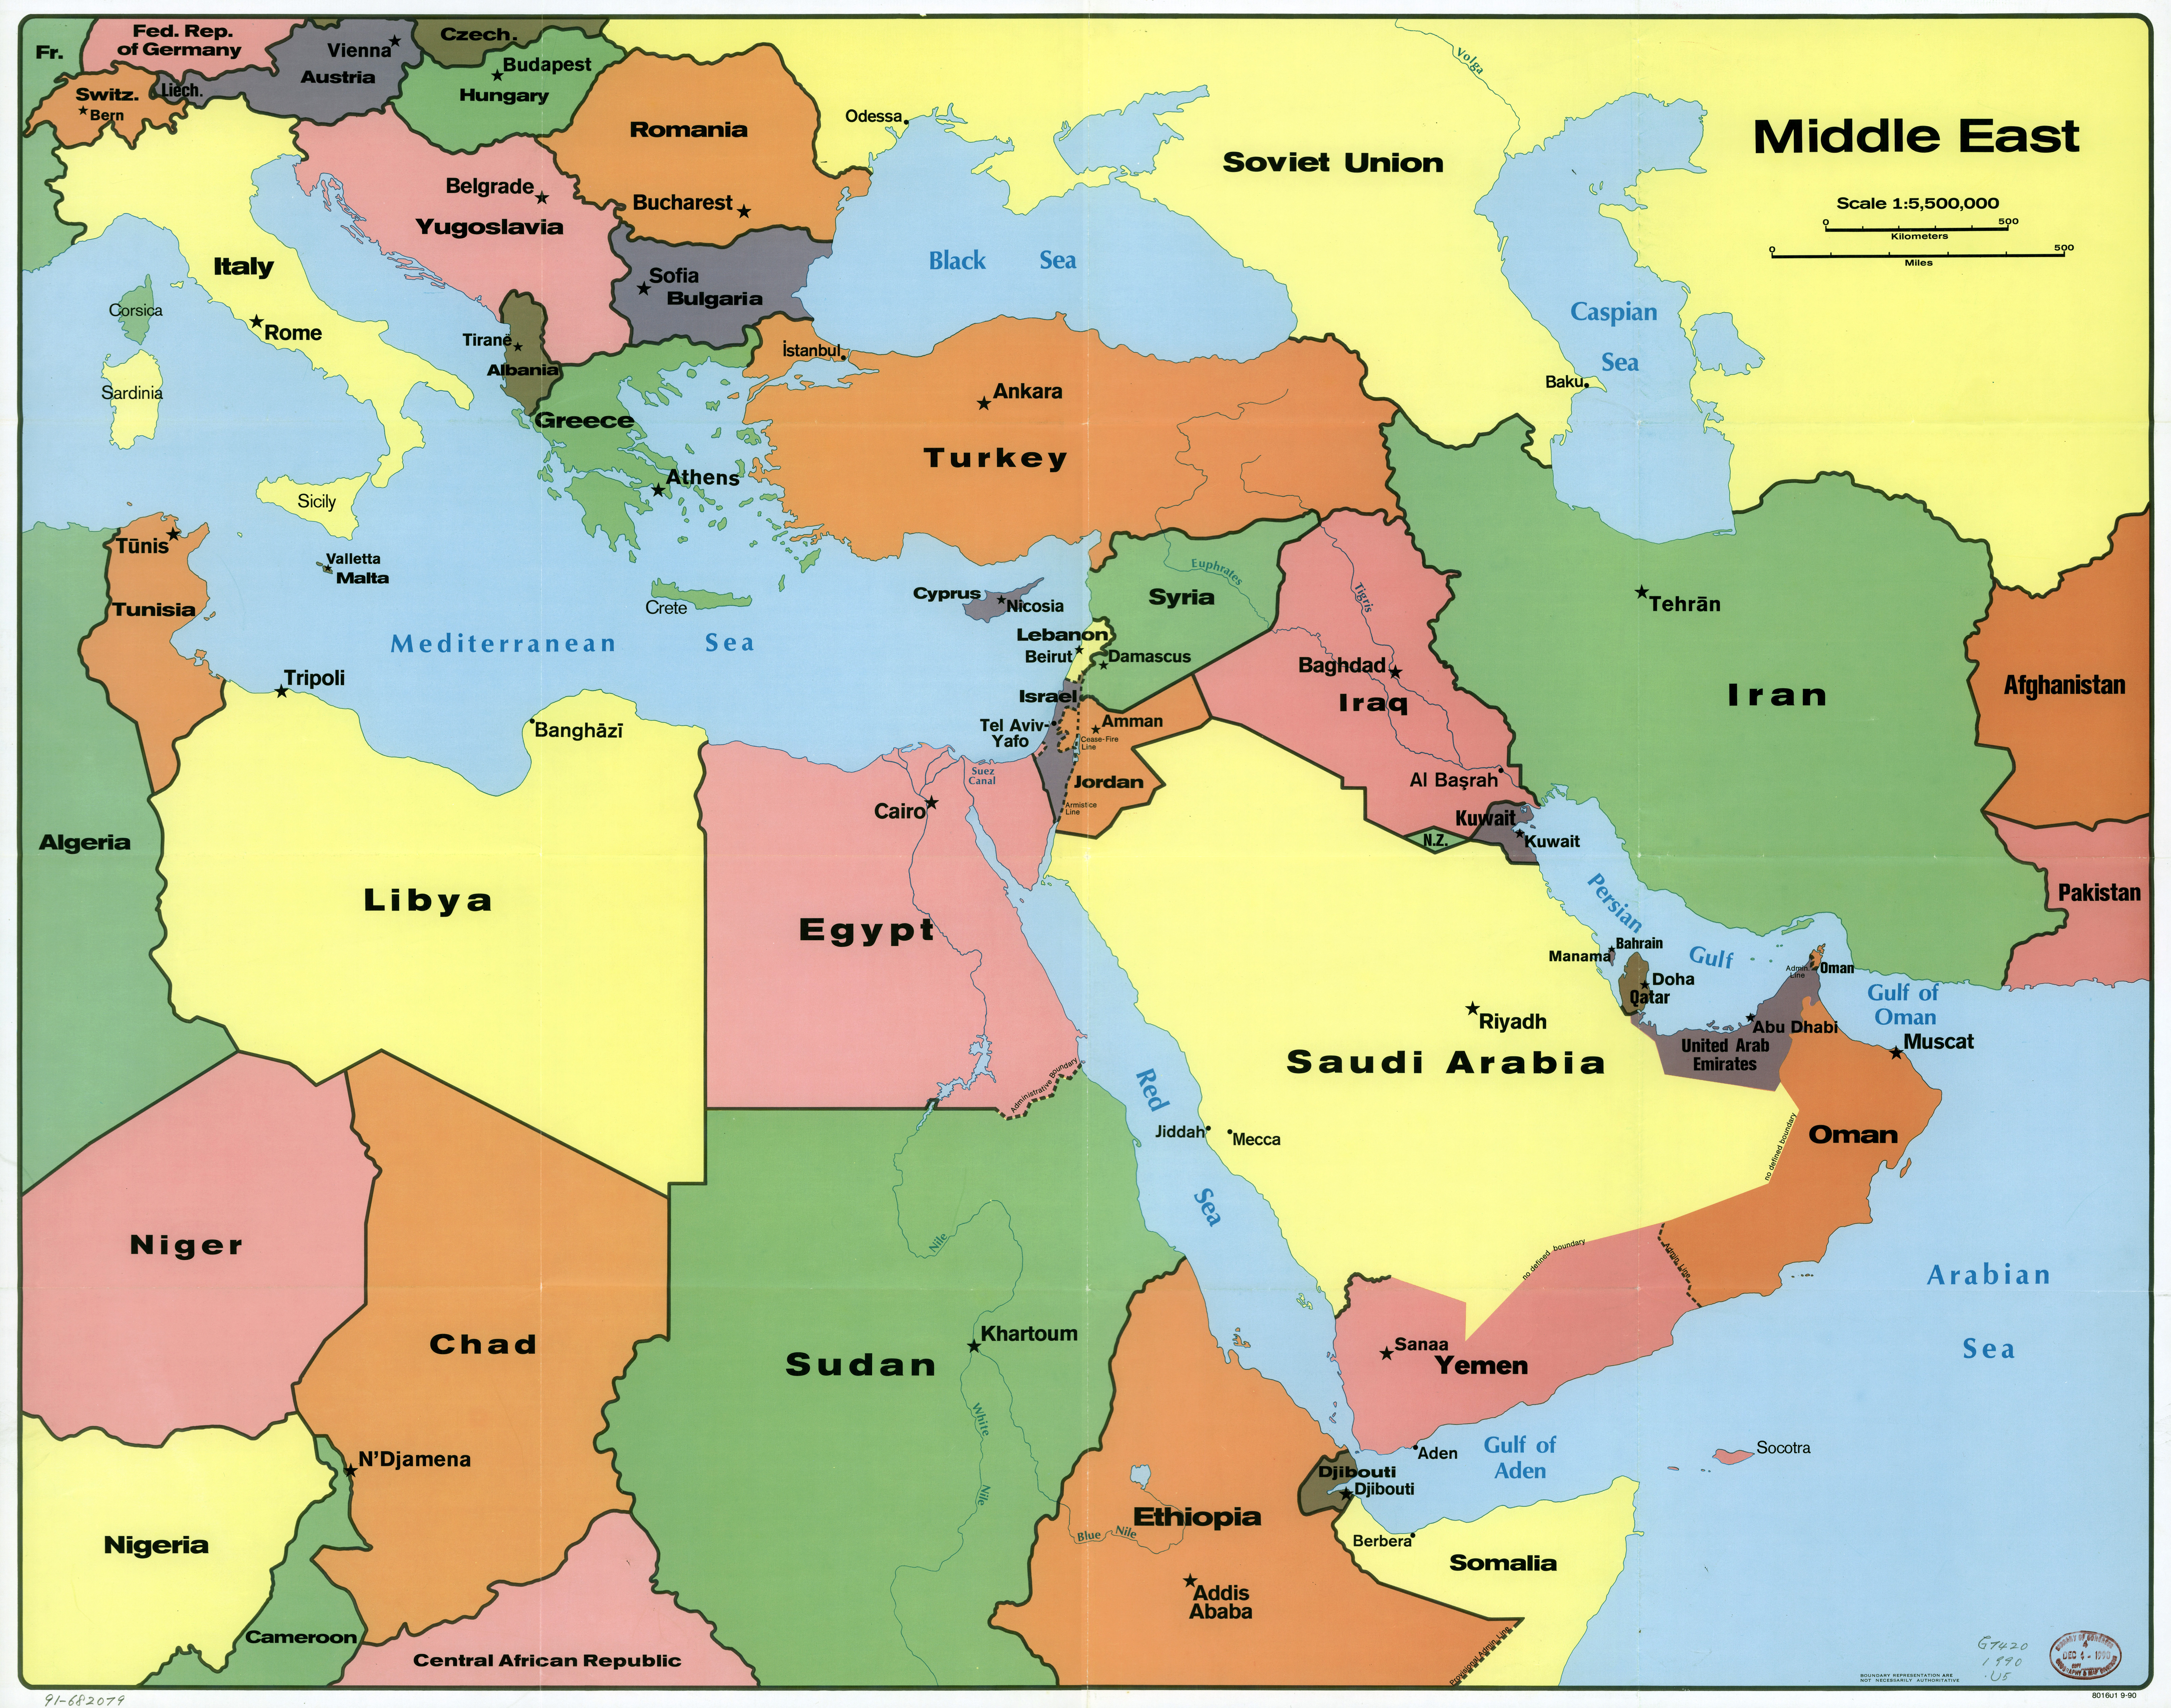 Large Scale Political Map Of The Middle East With Capitals - World map with capitals